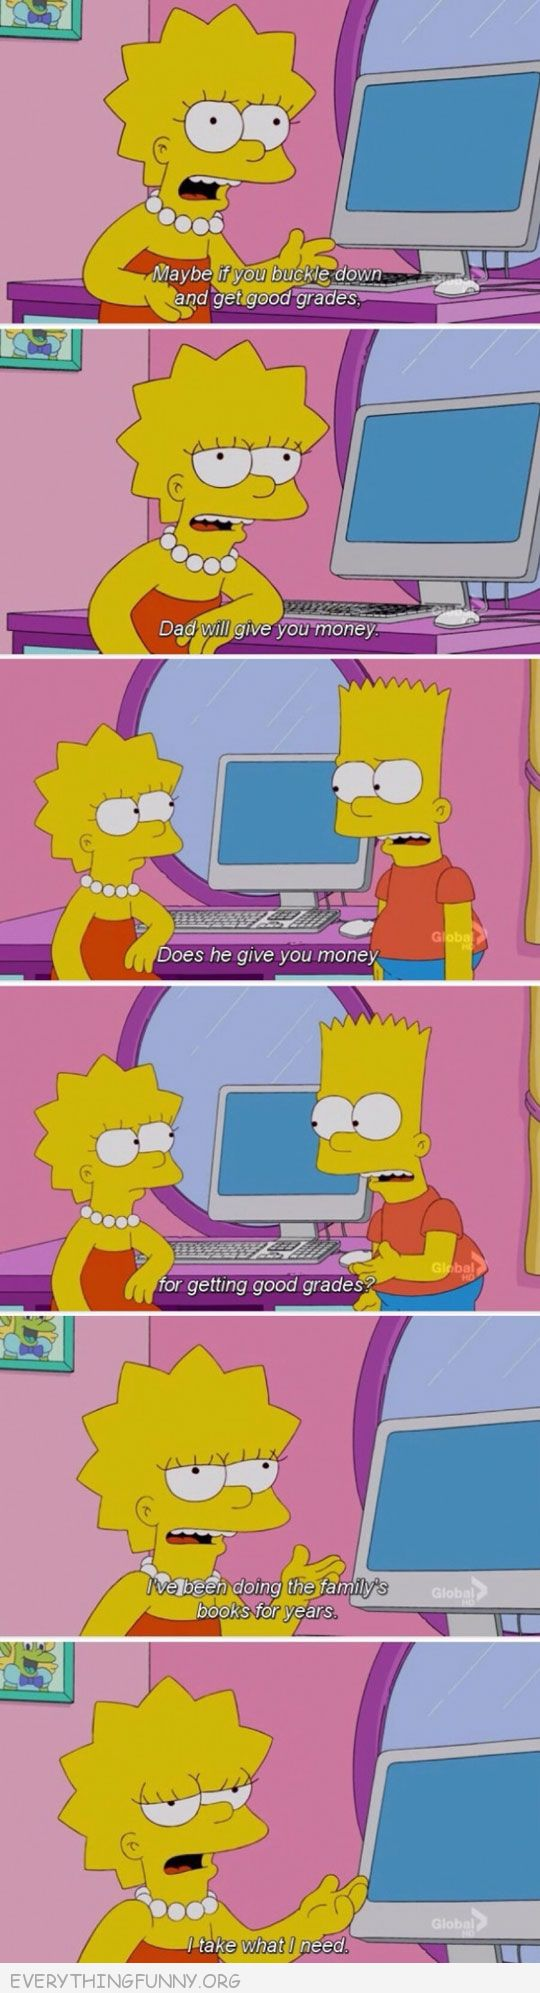 funny simpons cartoon lisa doing familiy's books for years i take what i need